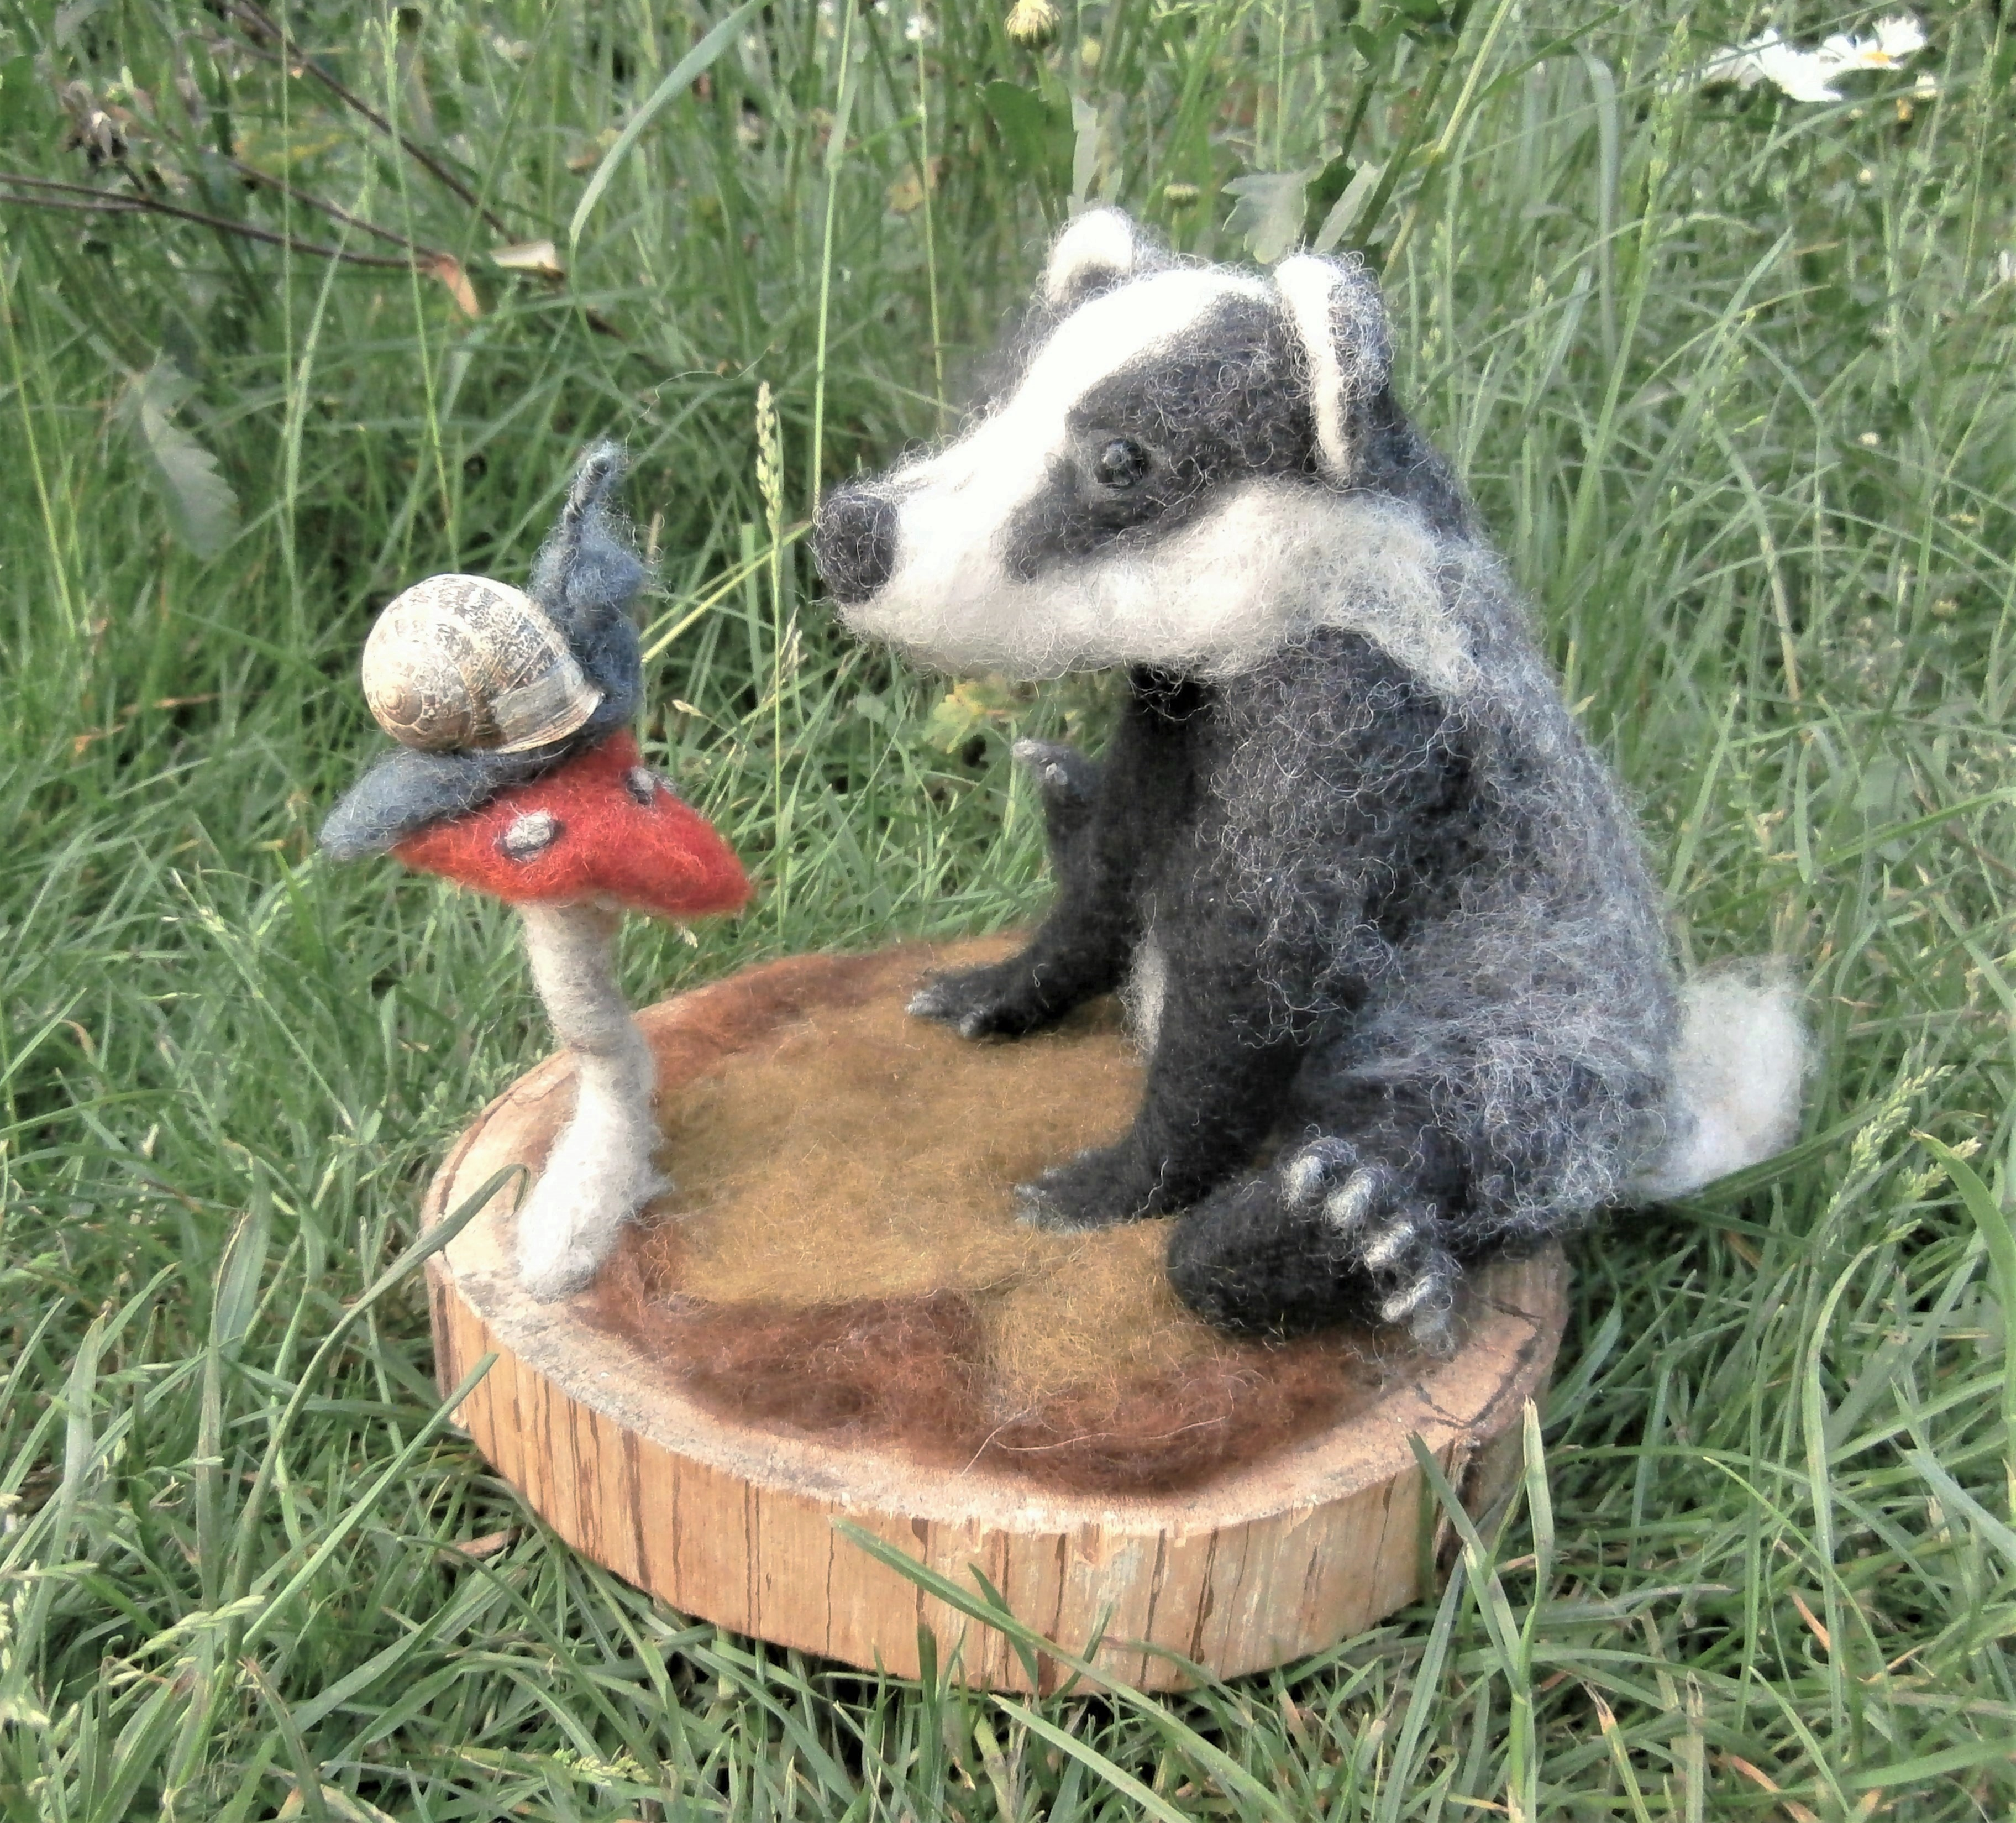 Badger and Snail Surprise